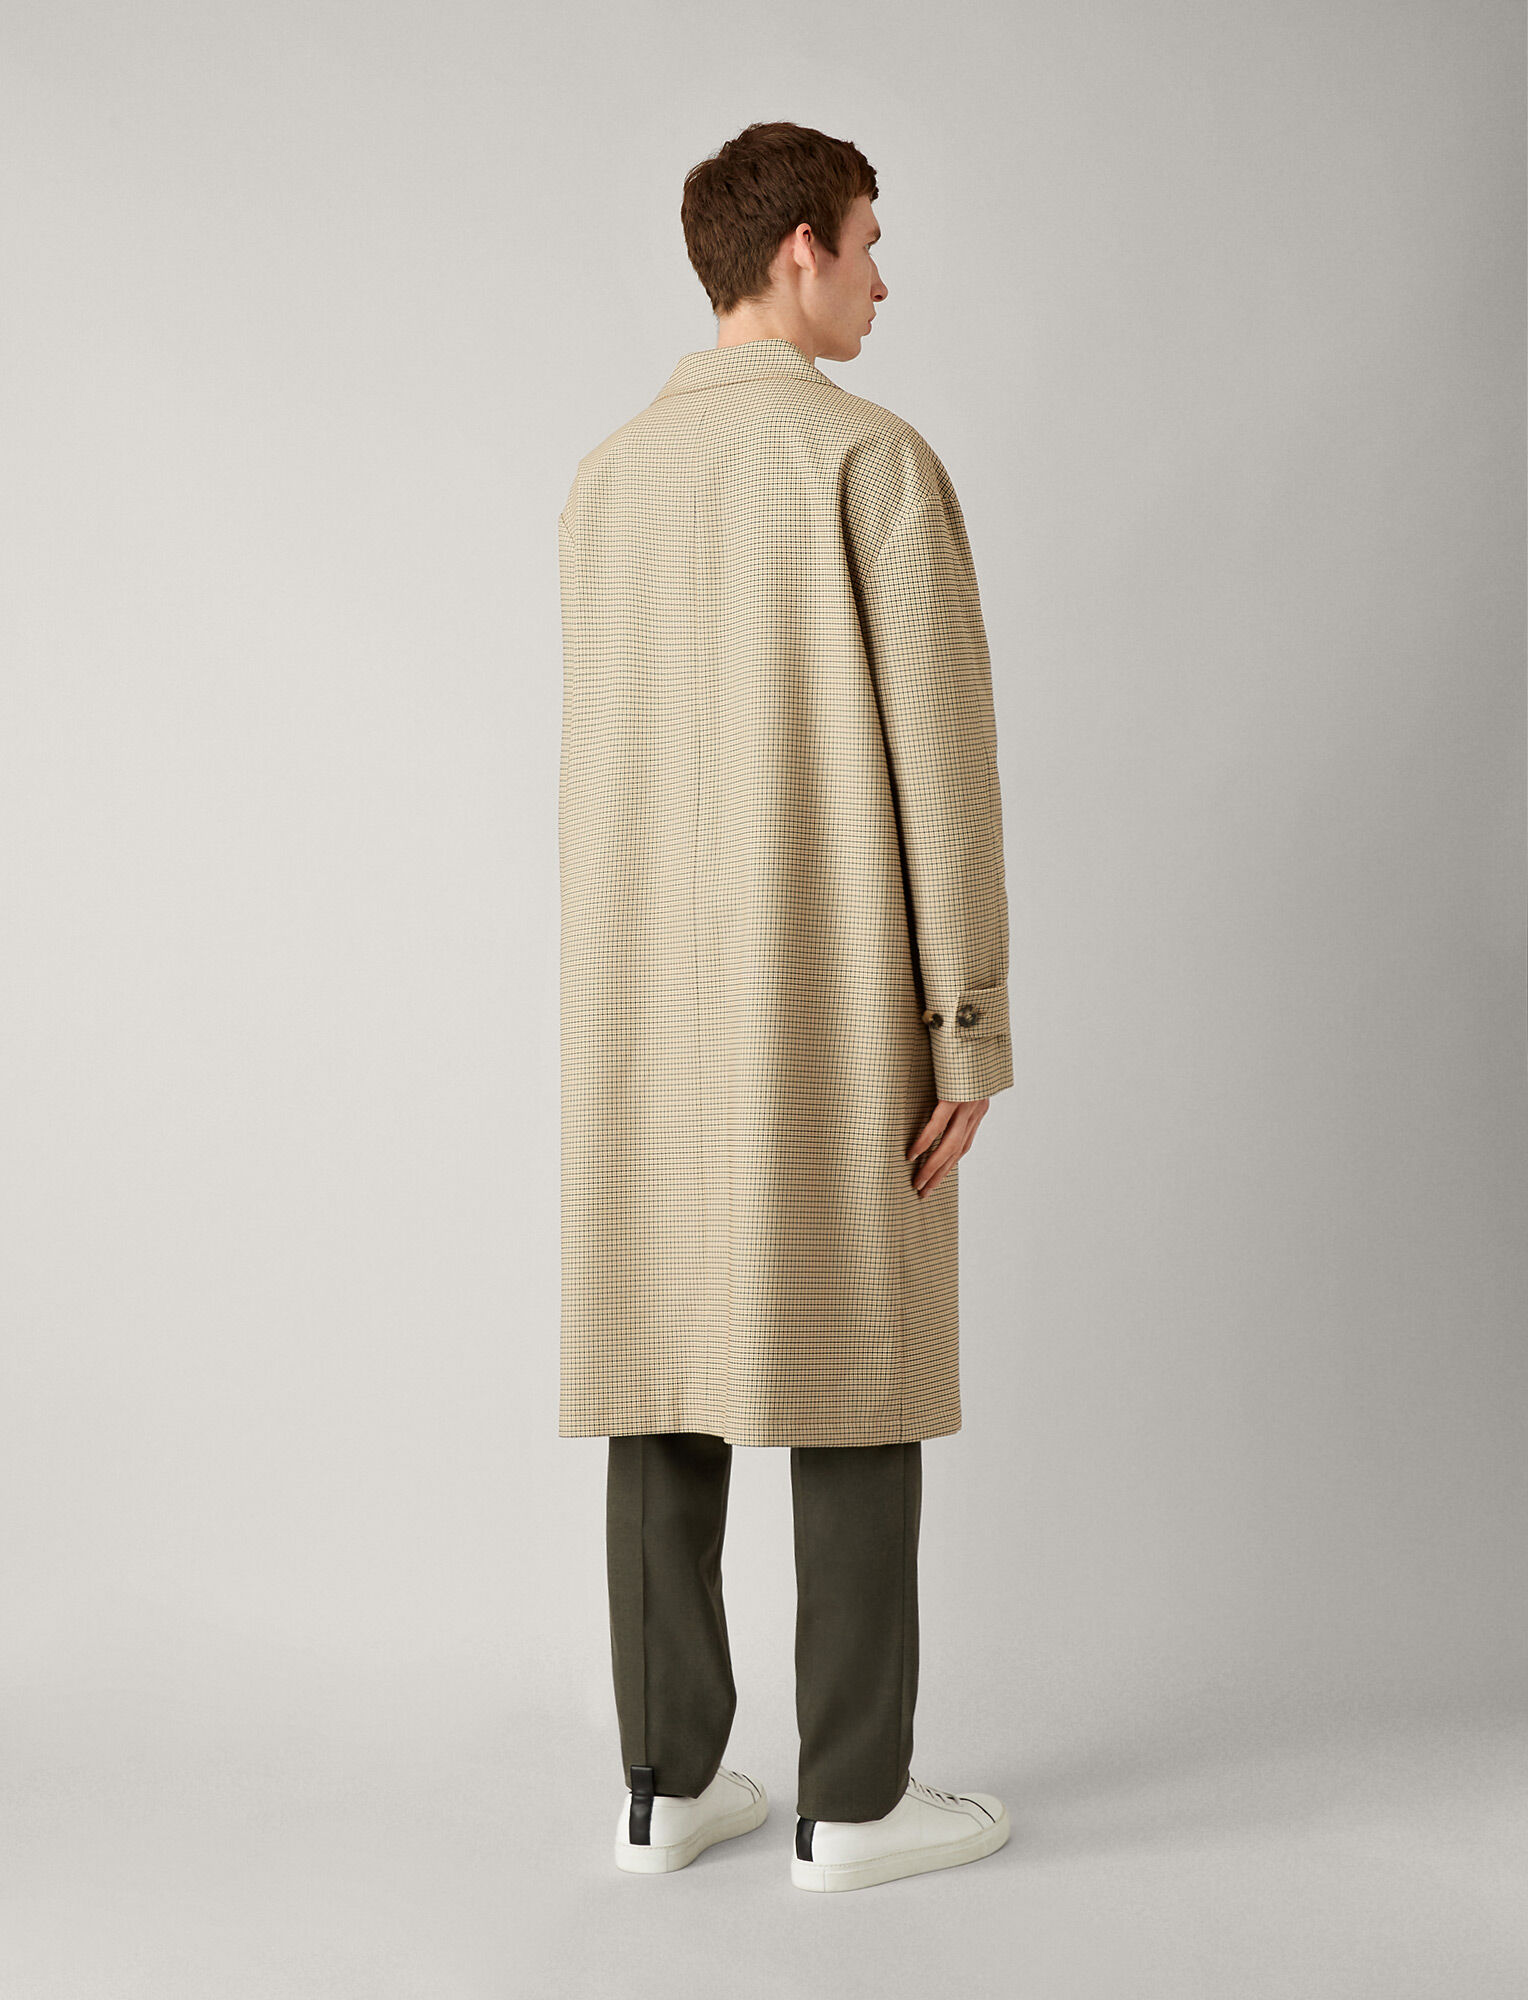 Joseph, Florence Houndstooth Coat, in CAMEL